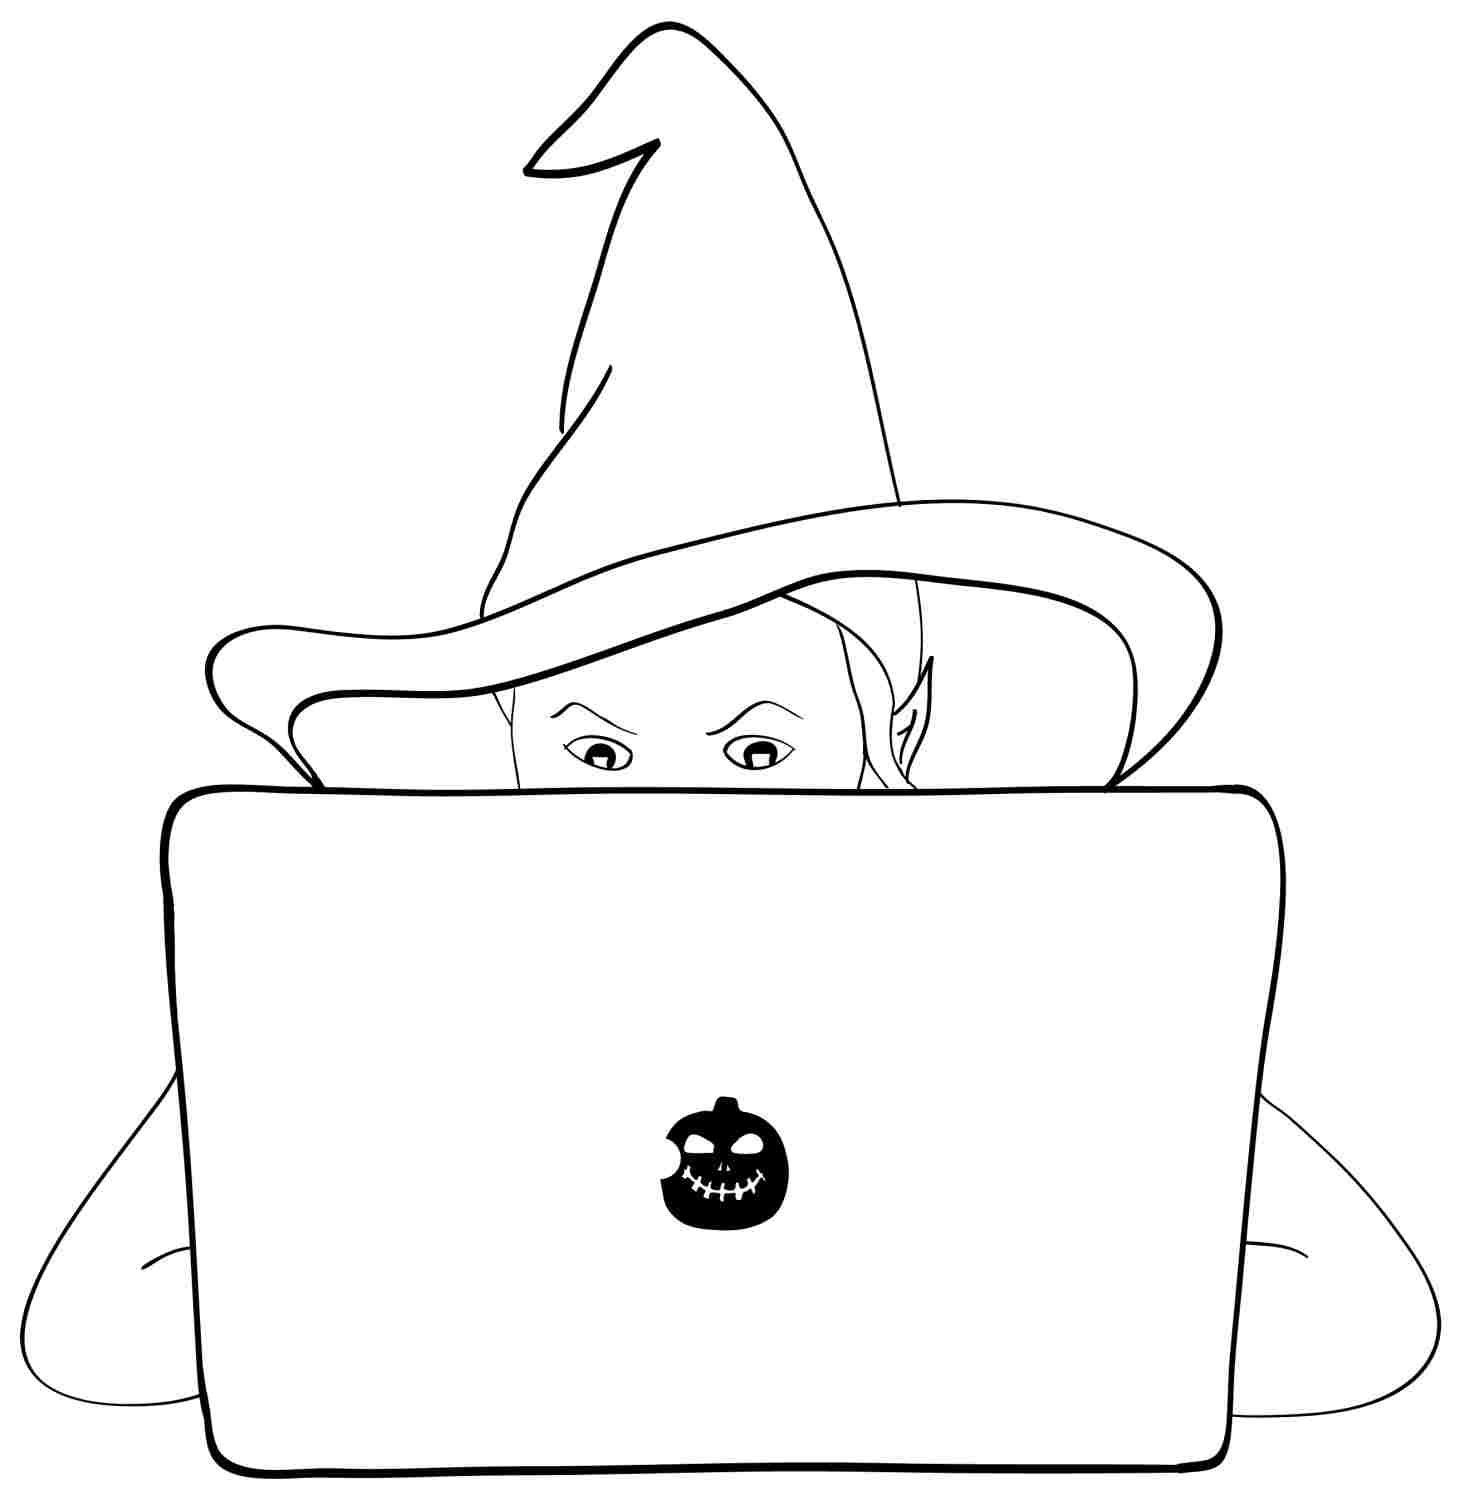 Halloween Witch Coloring Pages | 78-halloween-witch-coloring-pages-printable.jpg